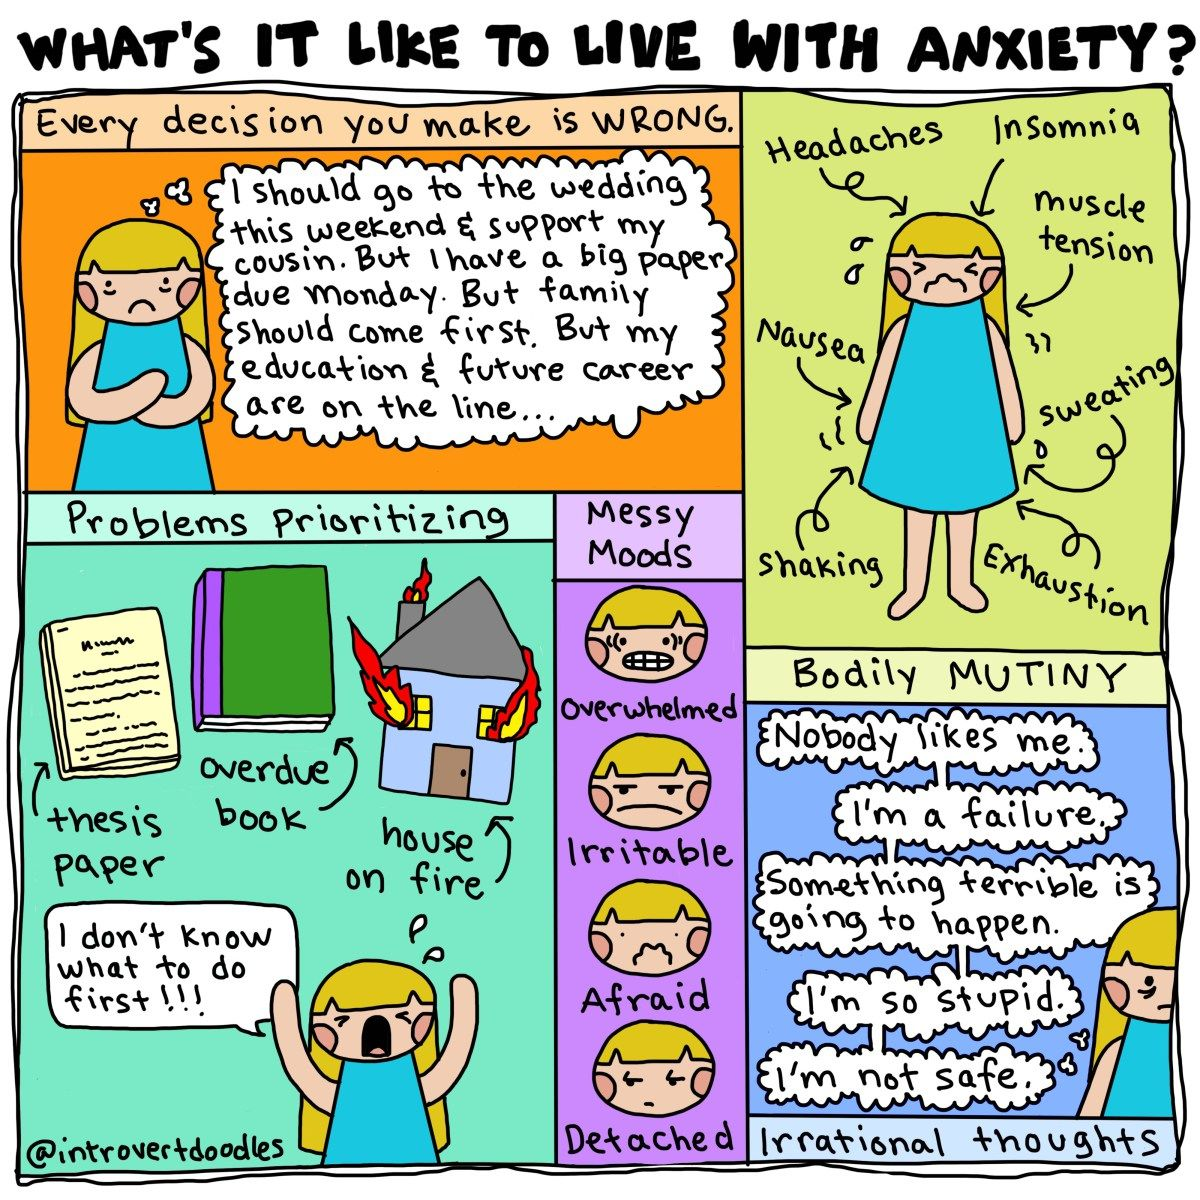 Image result for @introvertdoodles anxiety